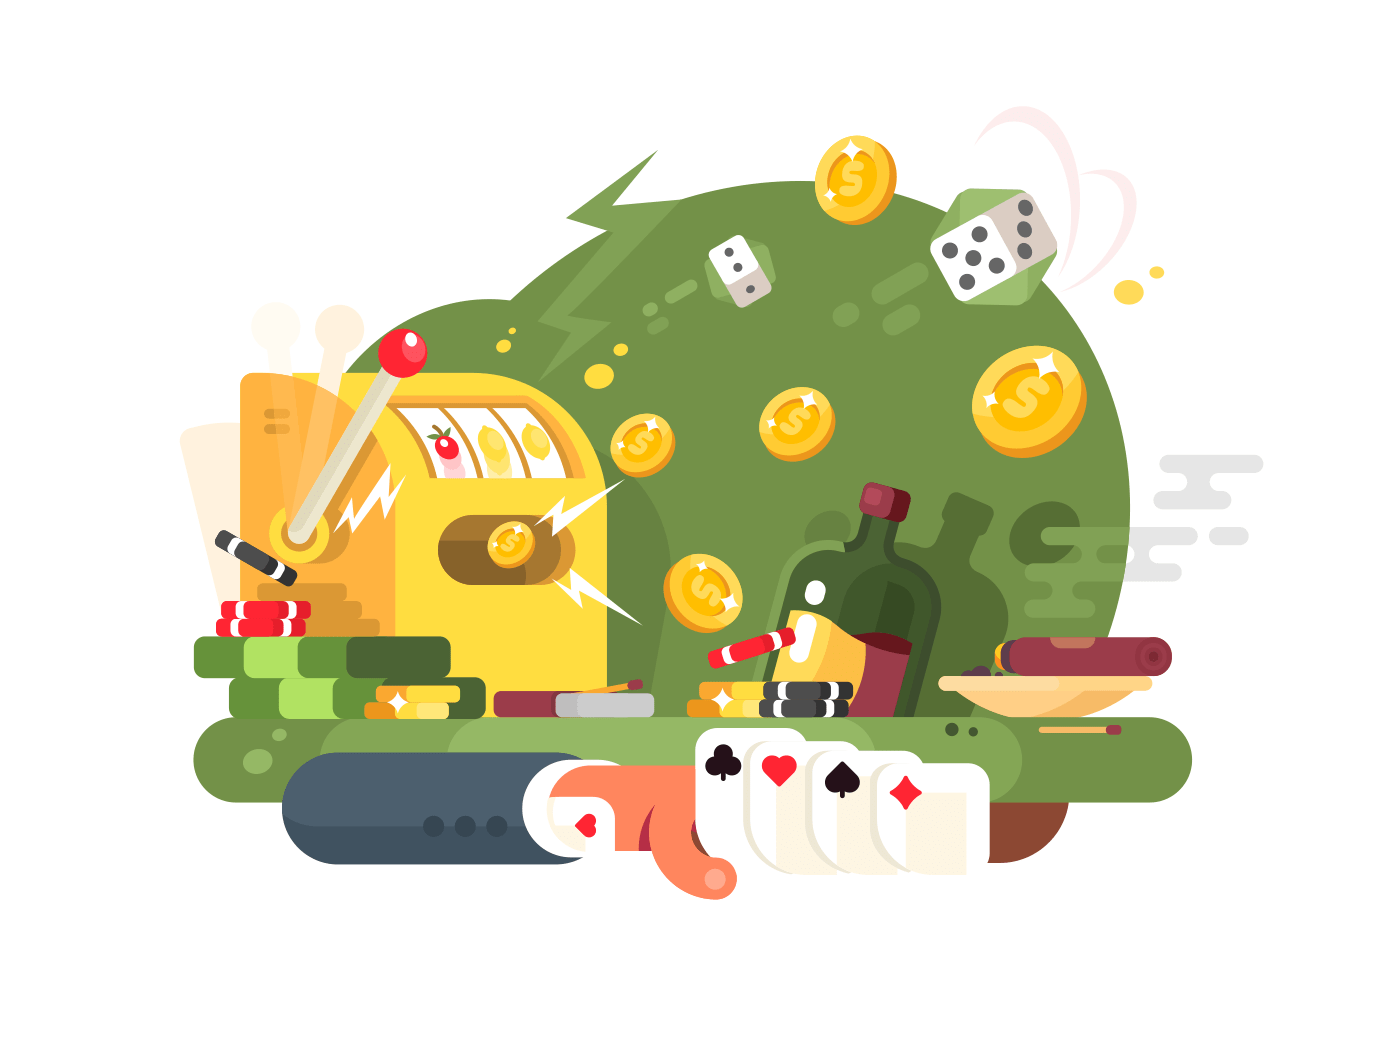 Casino gambling games illustration